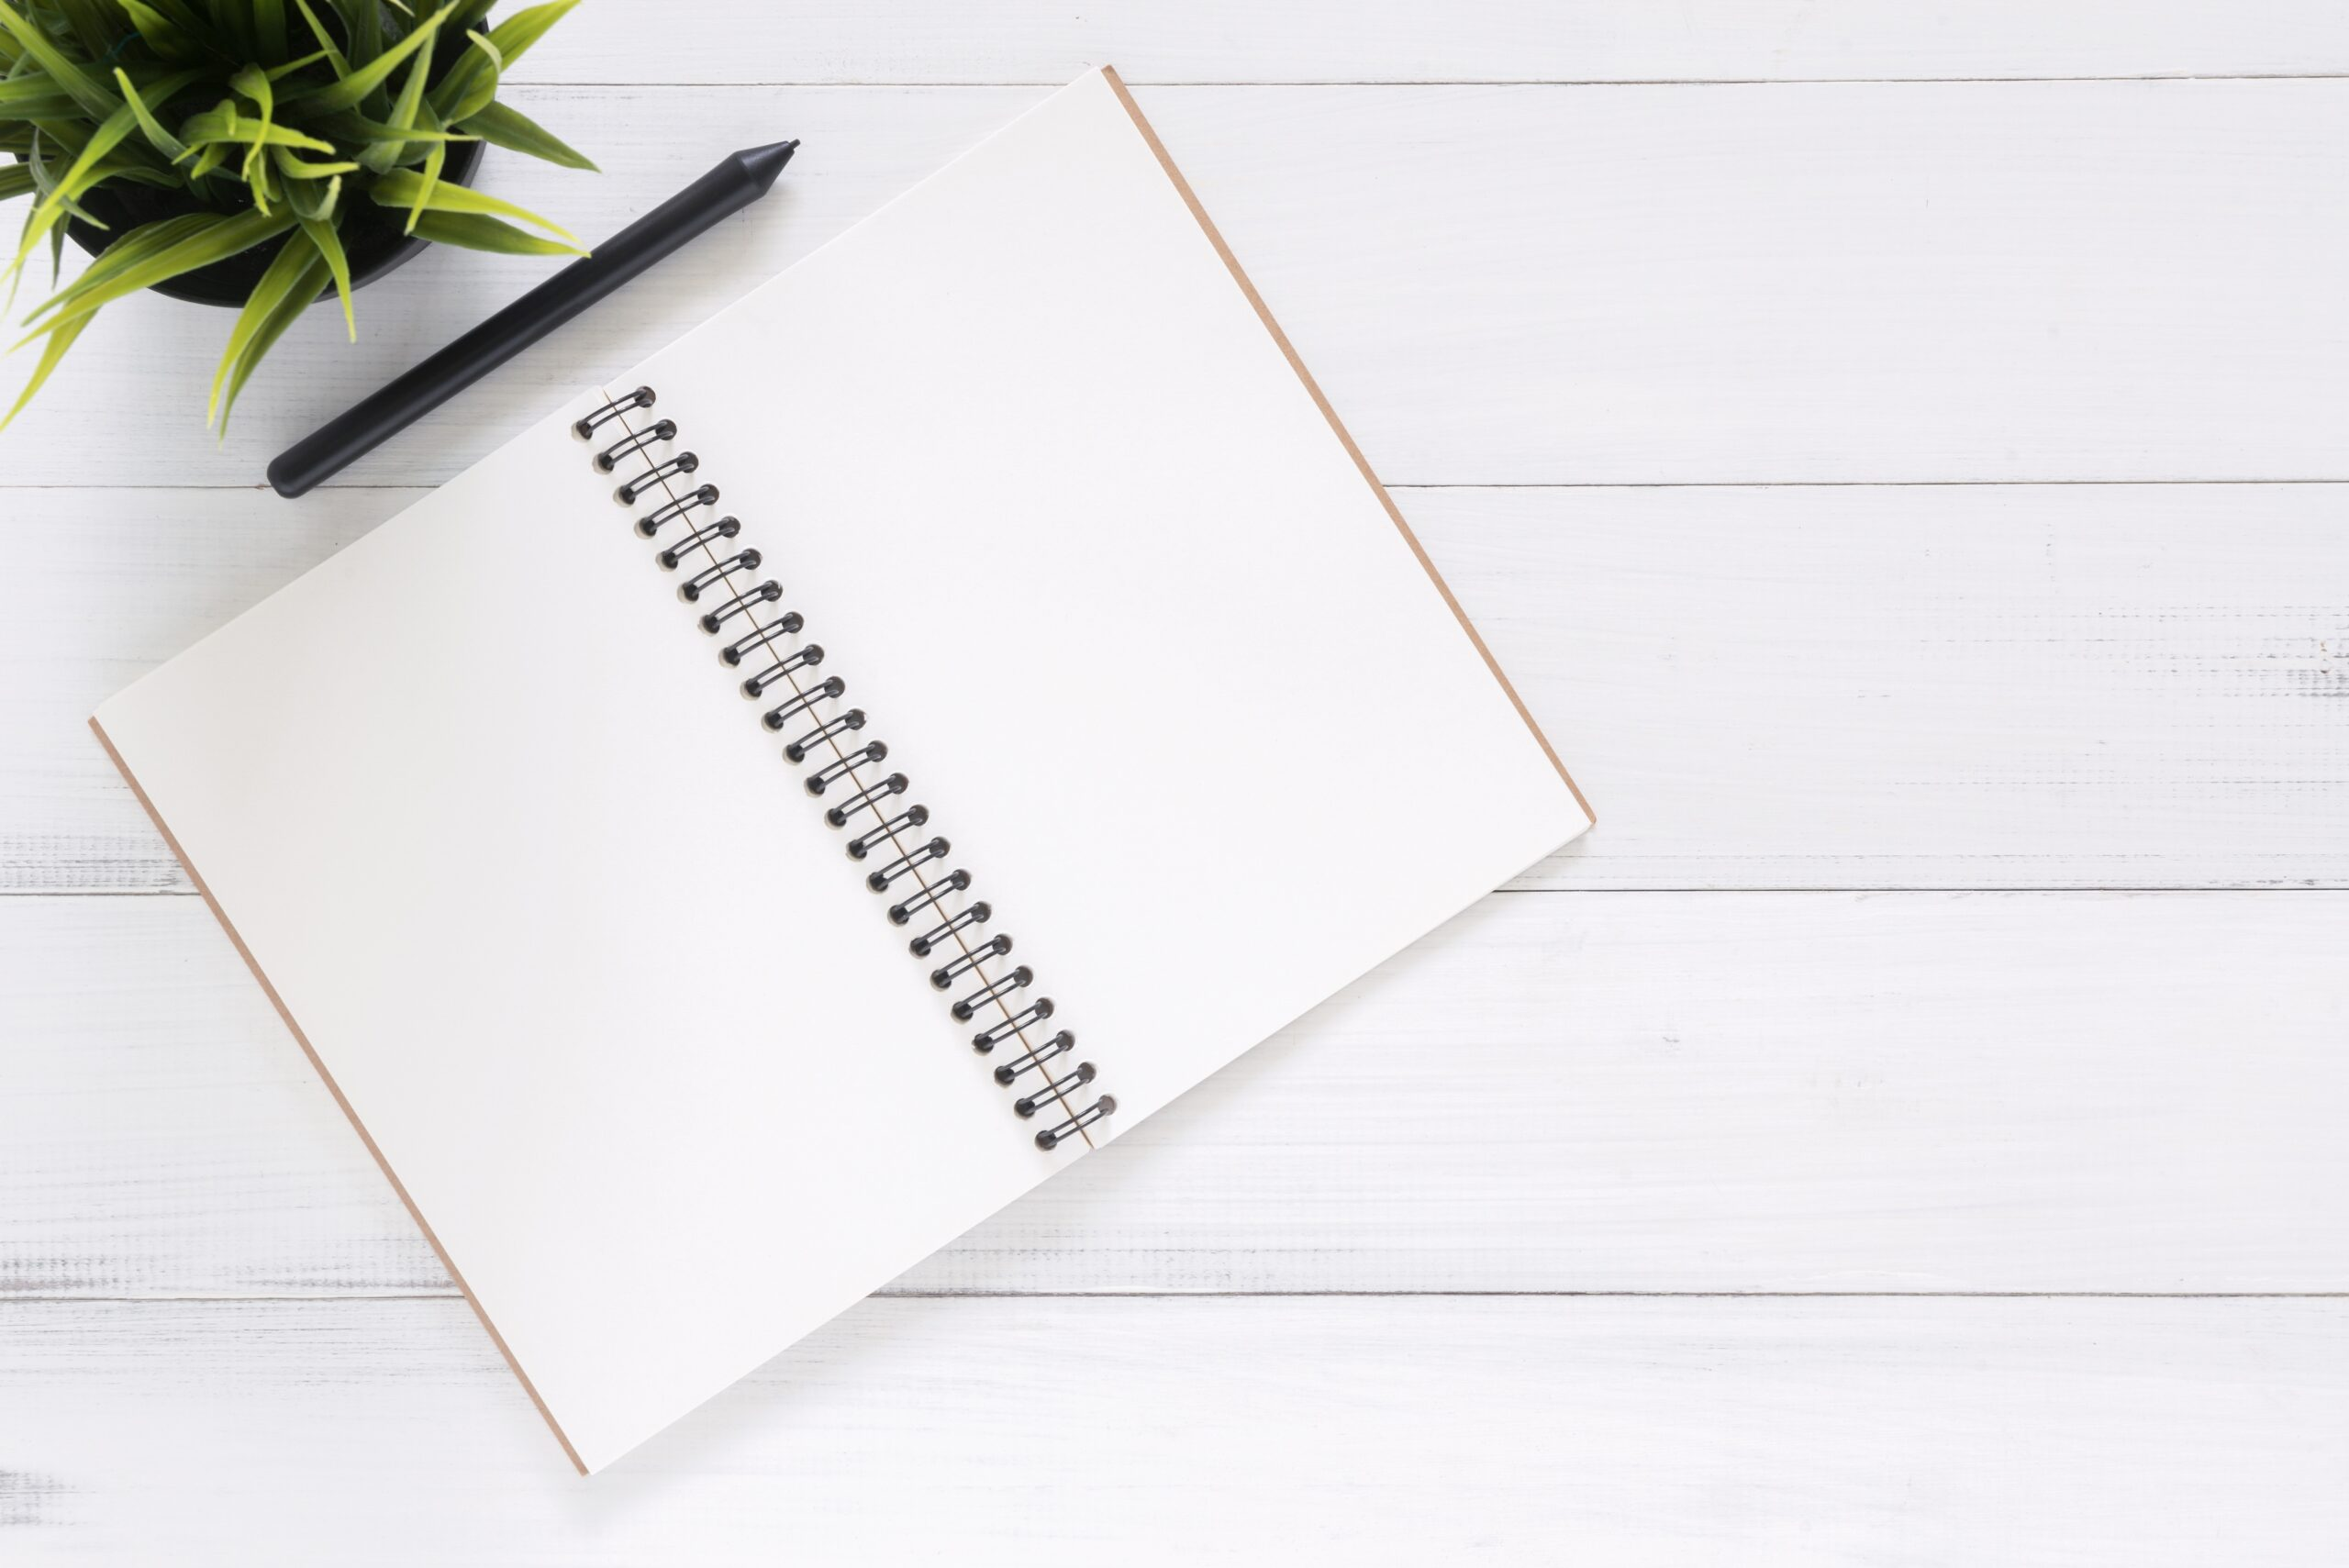 Notepad on white backdrop with pen on top.